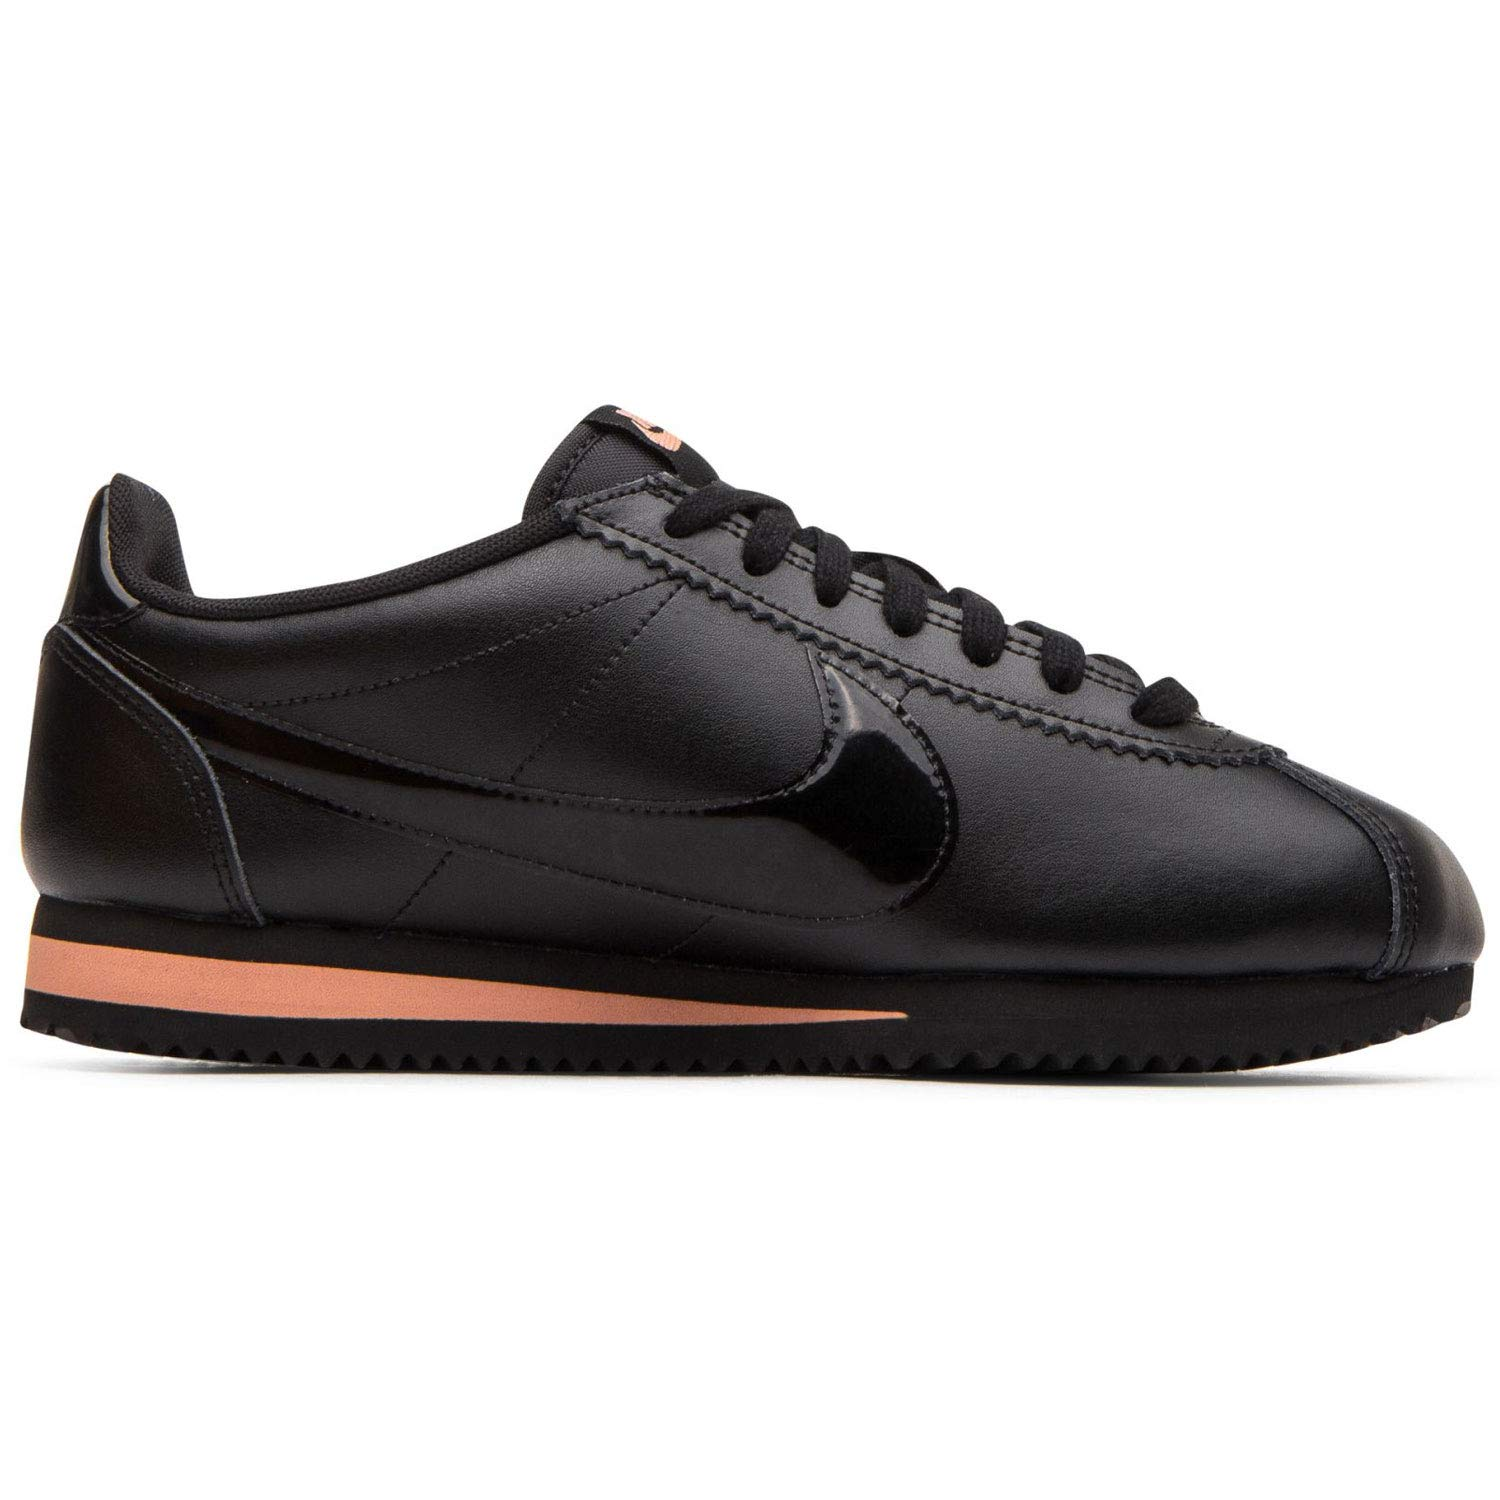 new products 39f4c c8c0e Amazon.com | Nike Women's Classic Cortez Premium Black/Rose Gold/Black  905614-010 | Fashion Sneakers